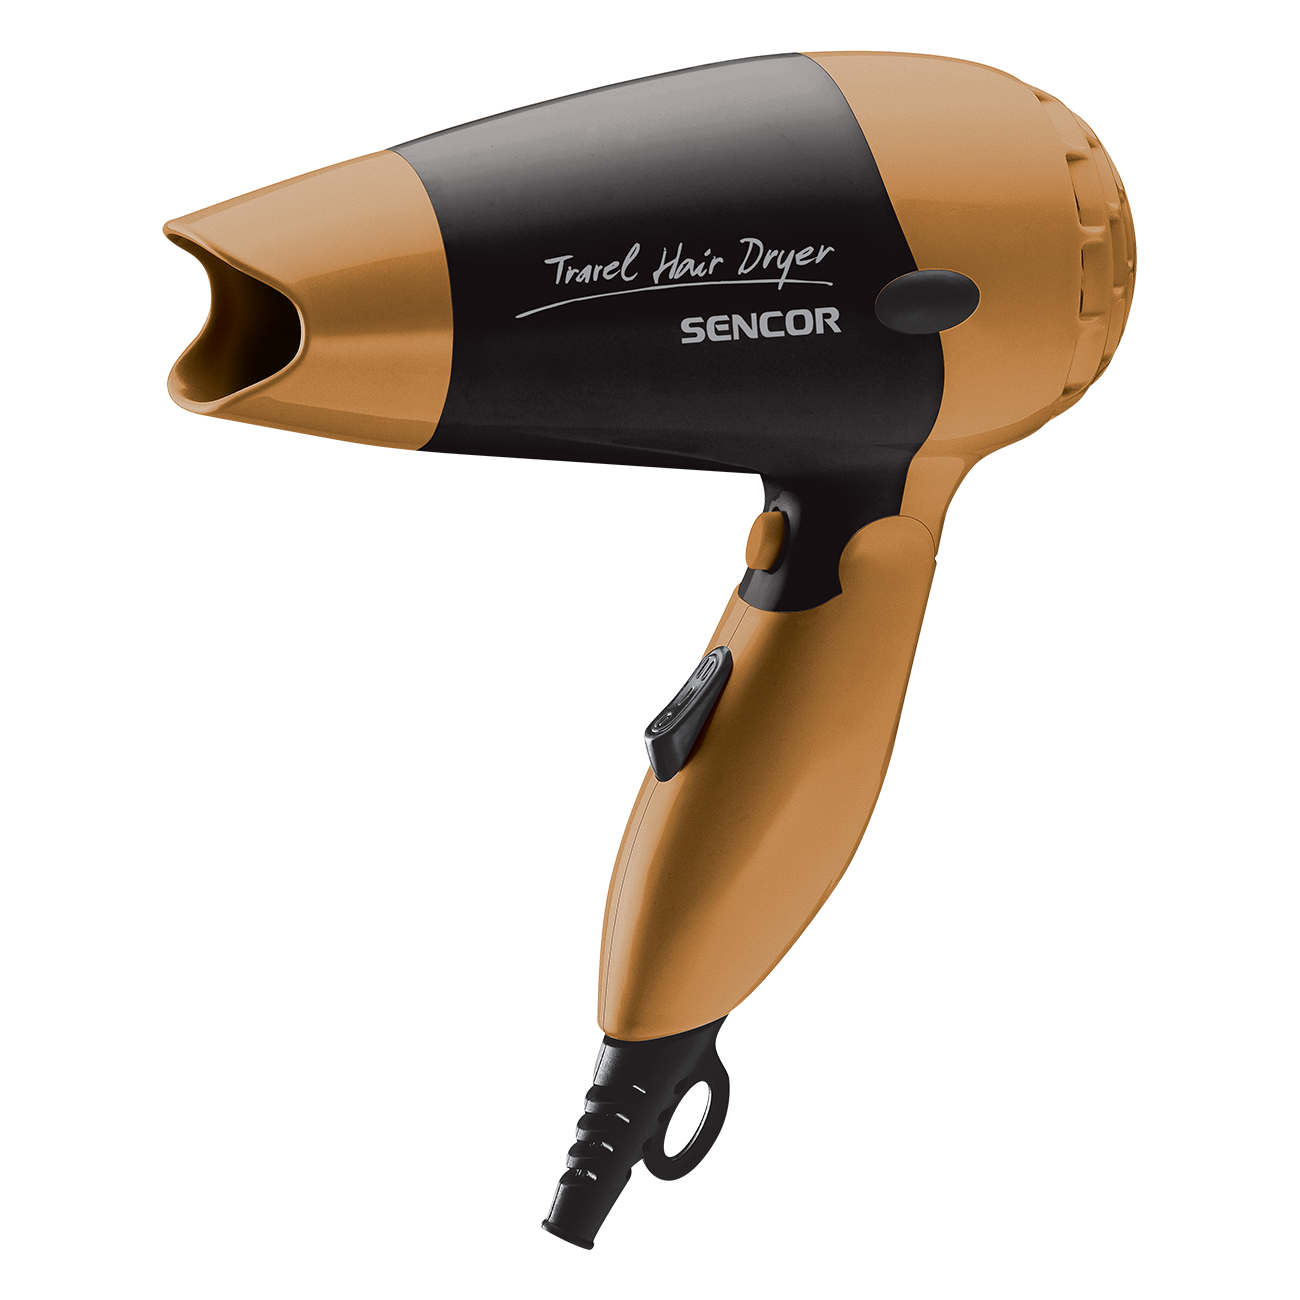 SHD 6400B Travel Hair Dryer